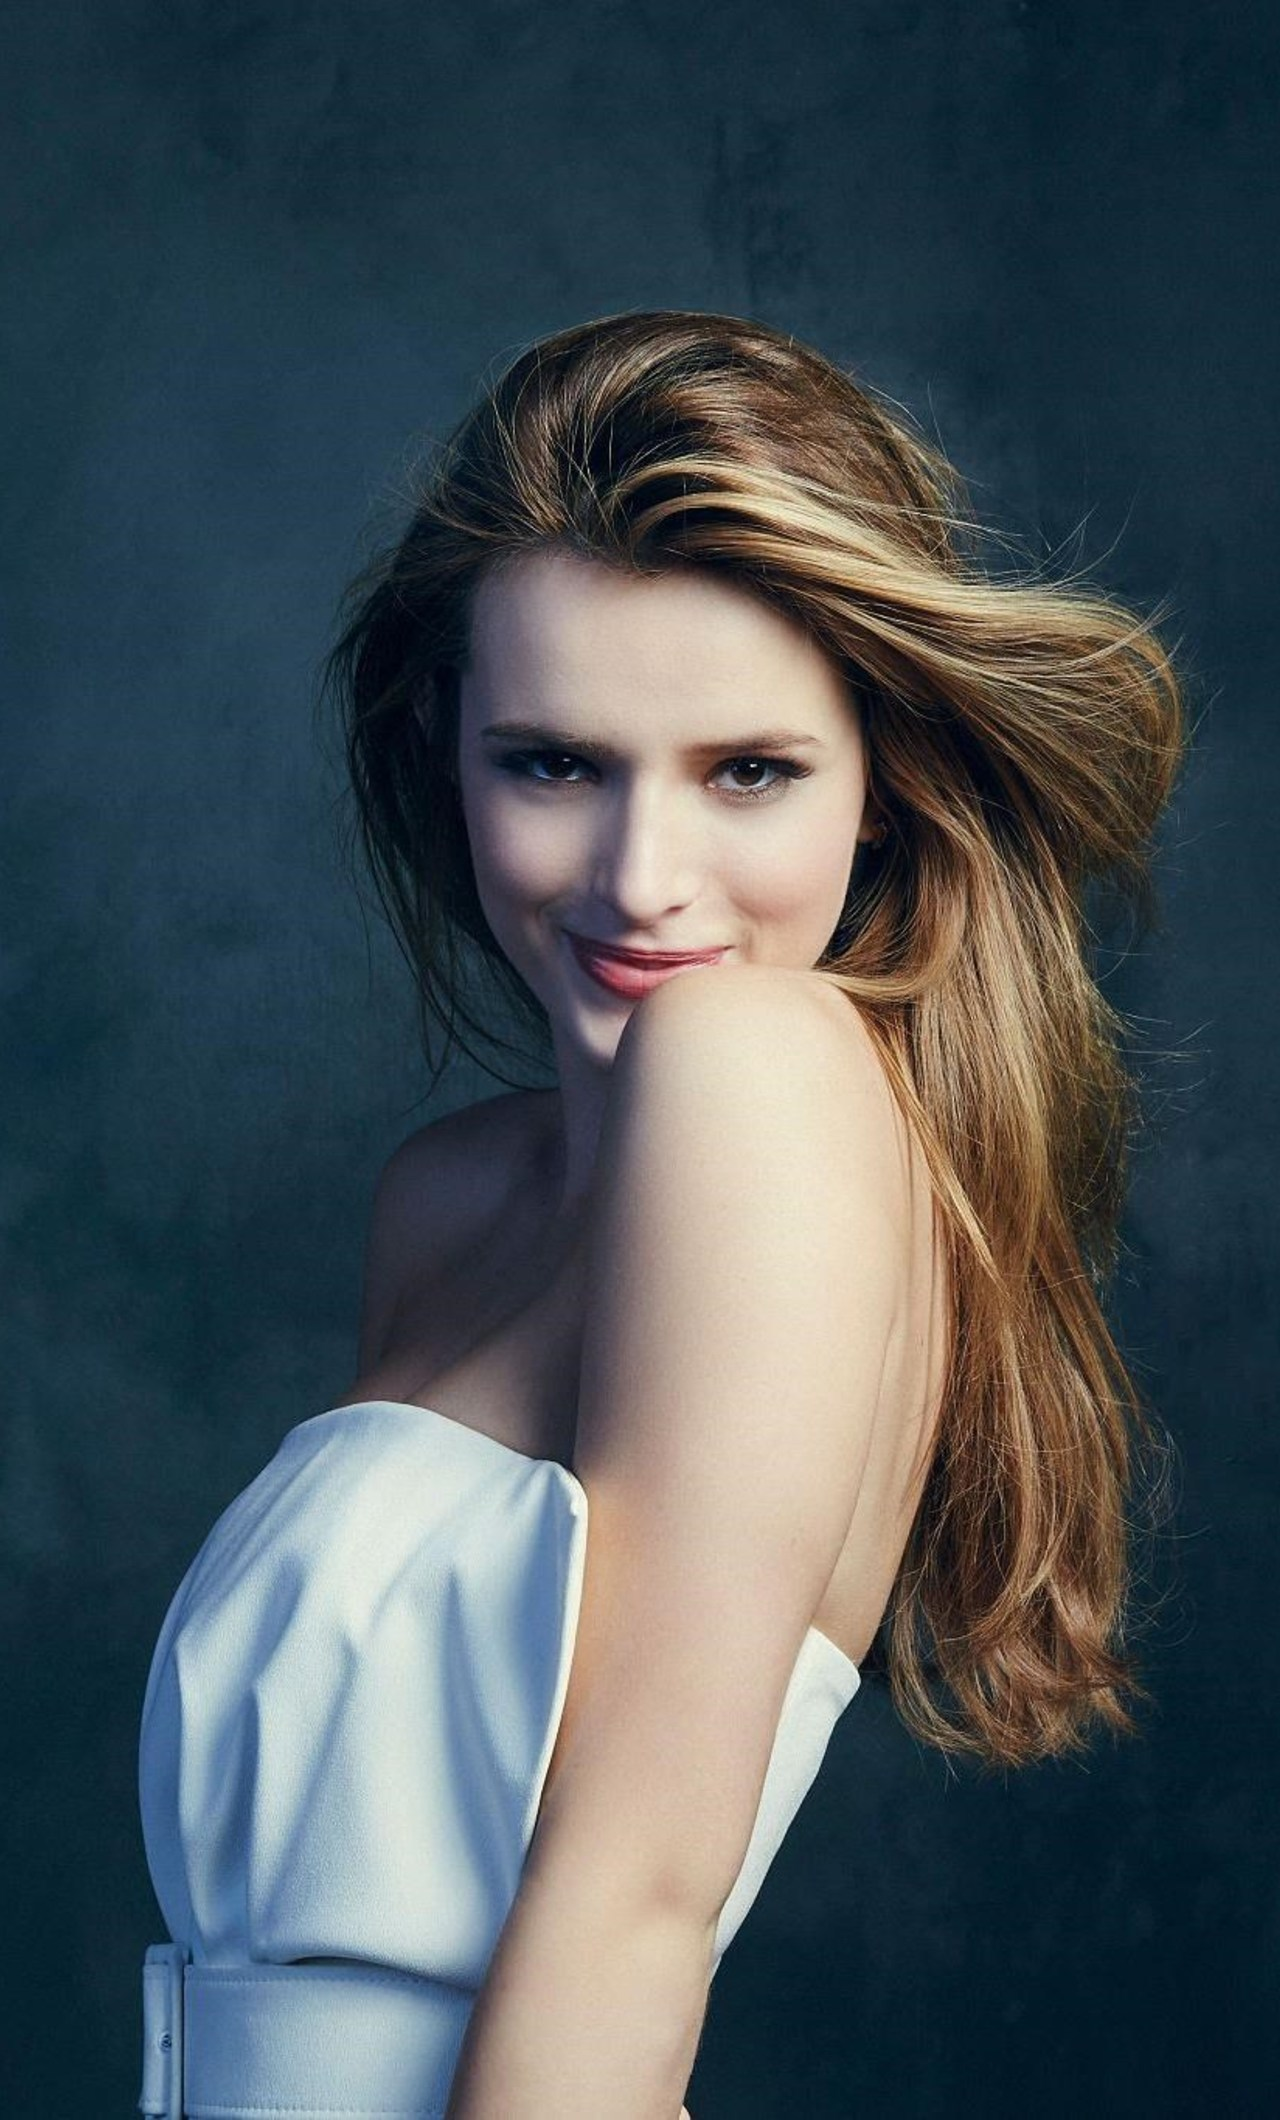 1280x2120 - Bella Thorne Wallpapers 25